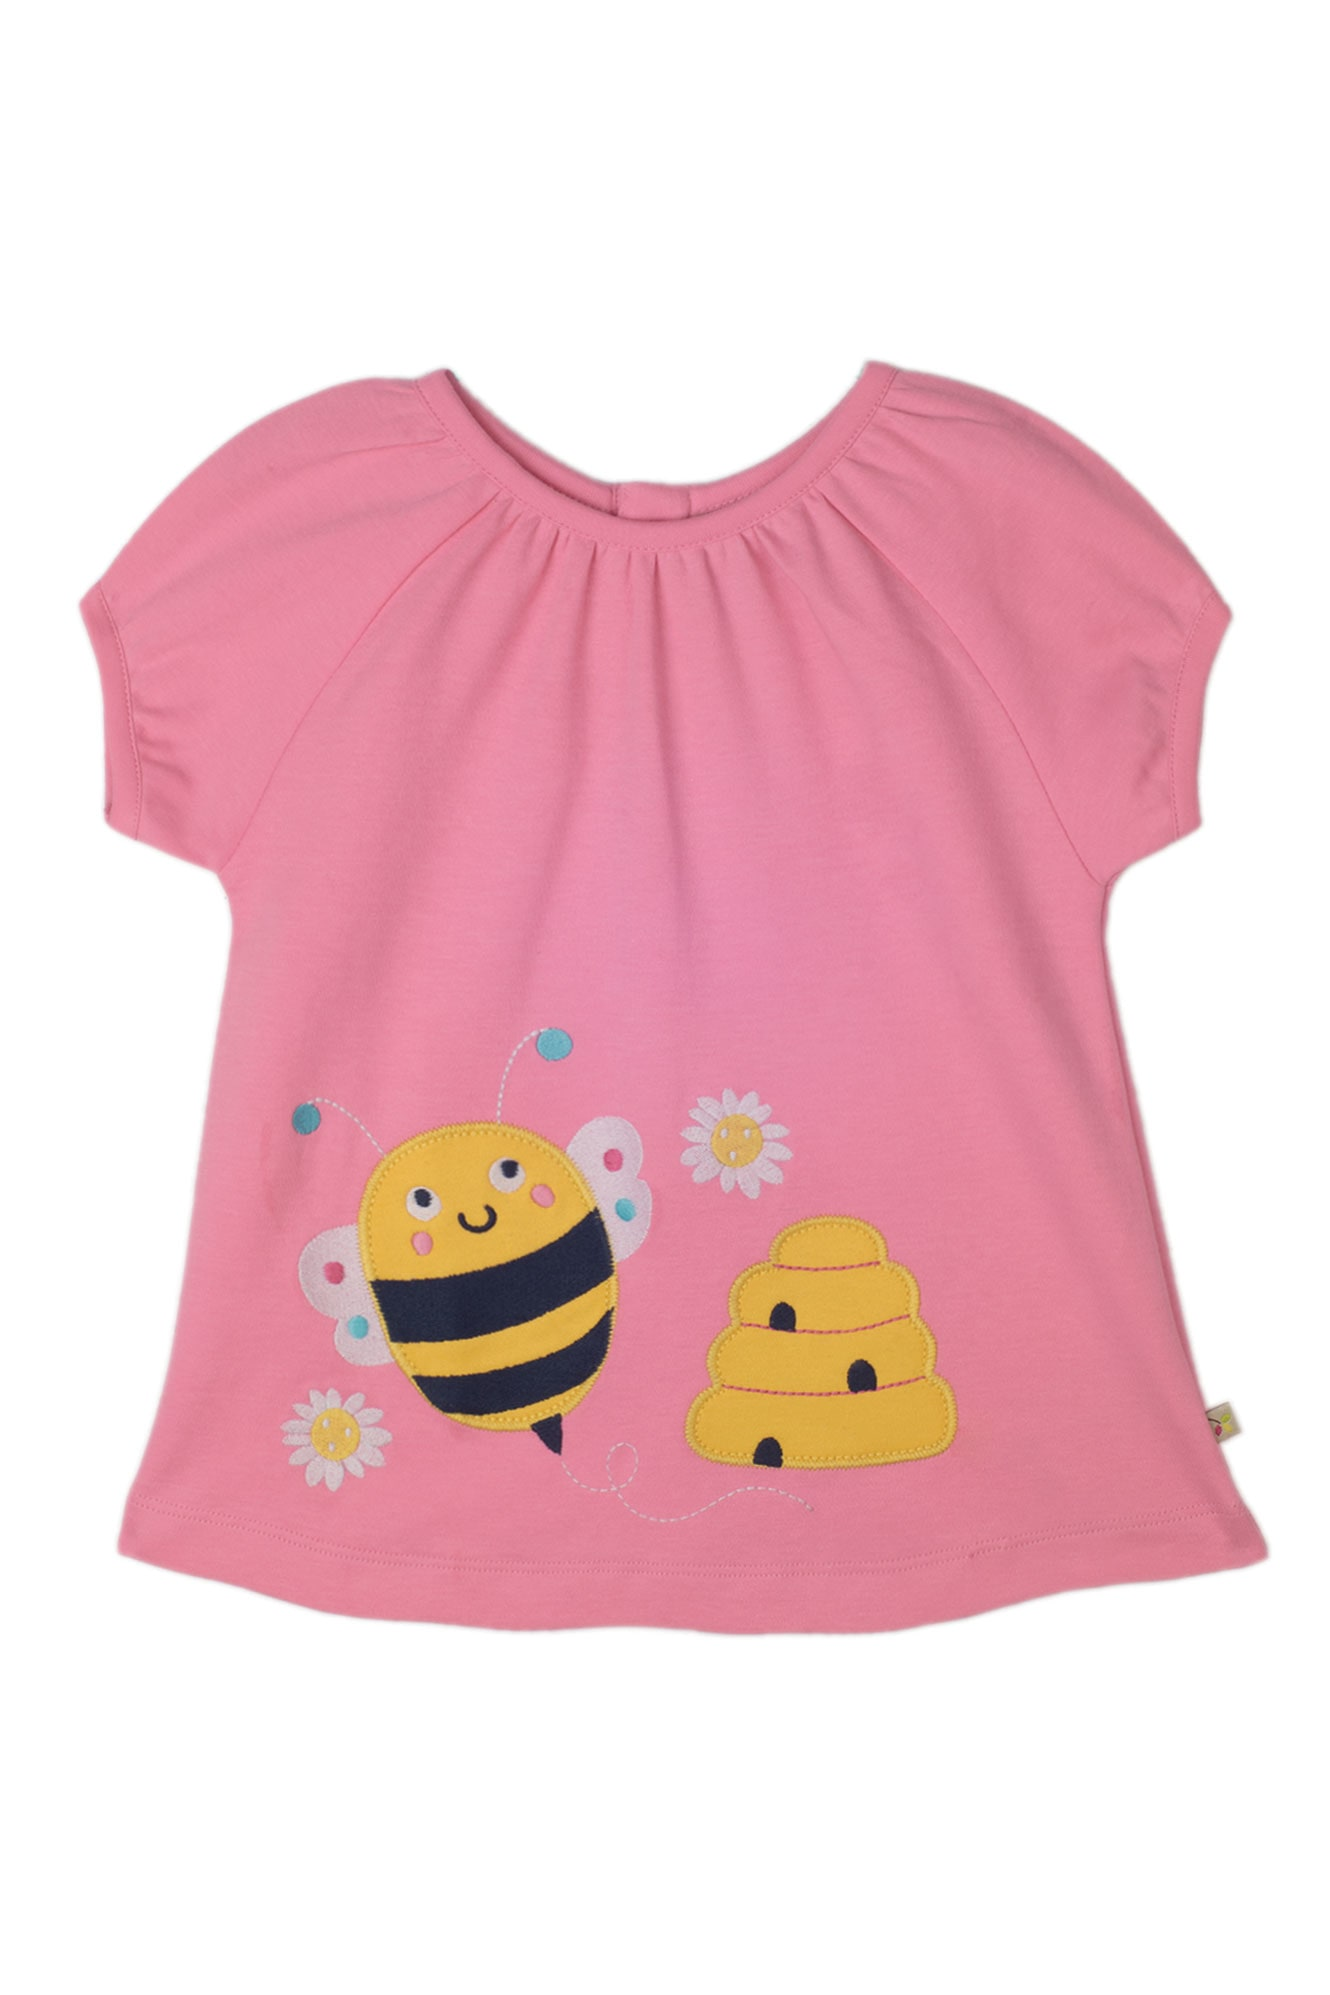 Stockists of Annie Applique Top